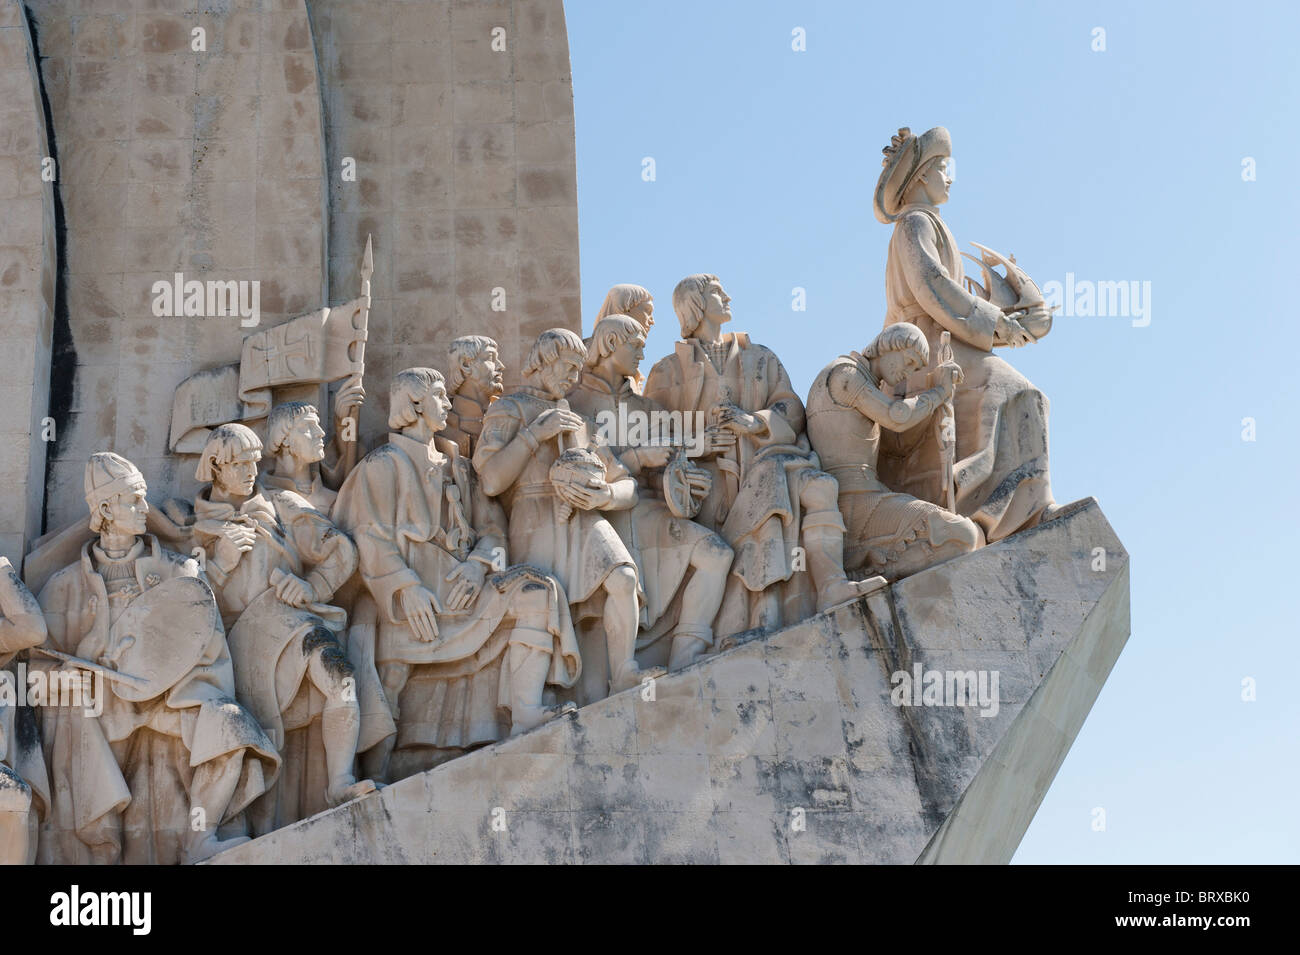 Detail on the Monument to the Discoveries on Lisbon's Belem waterfront - Stock Image